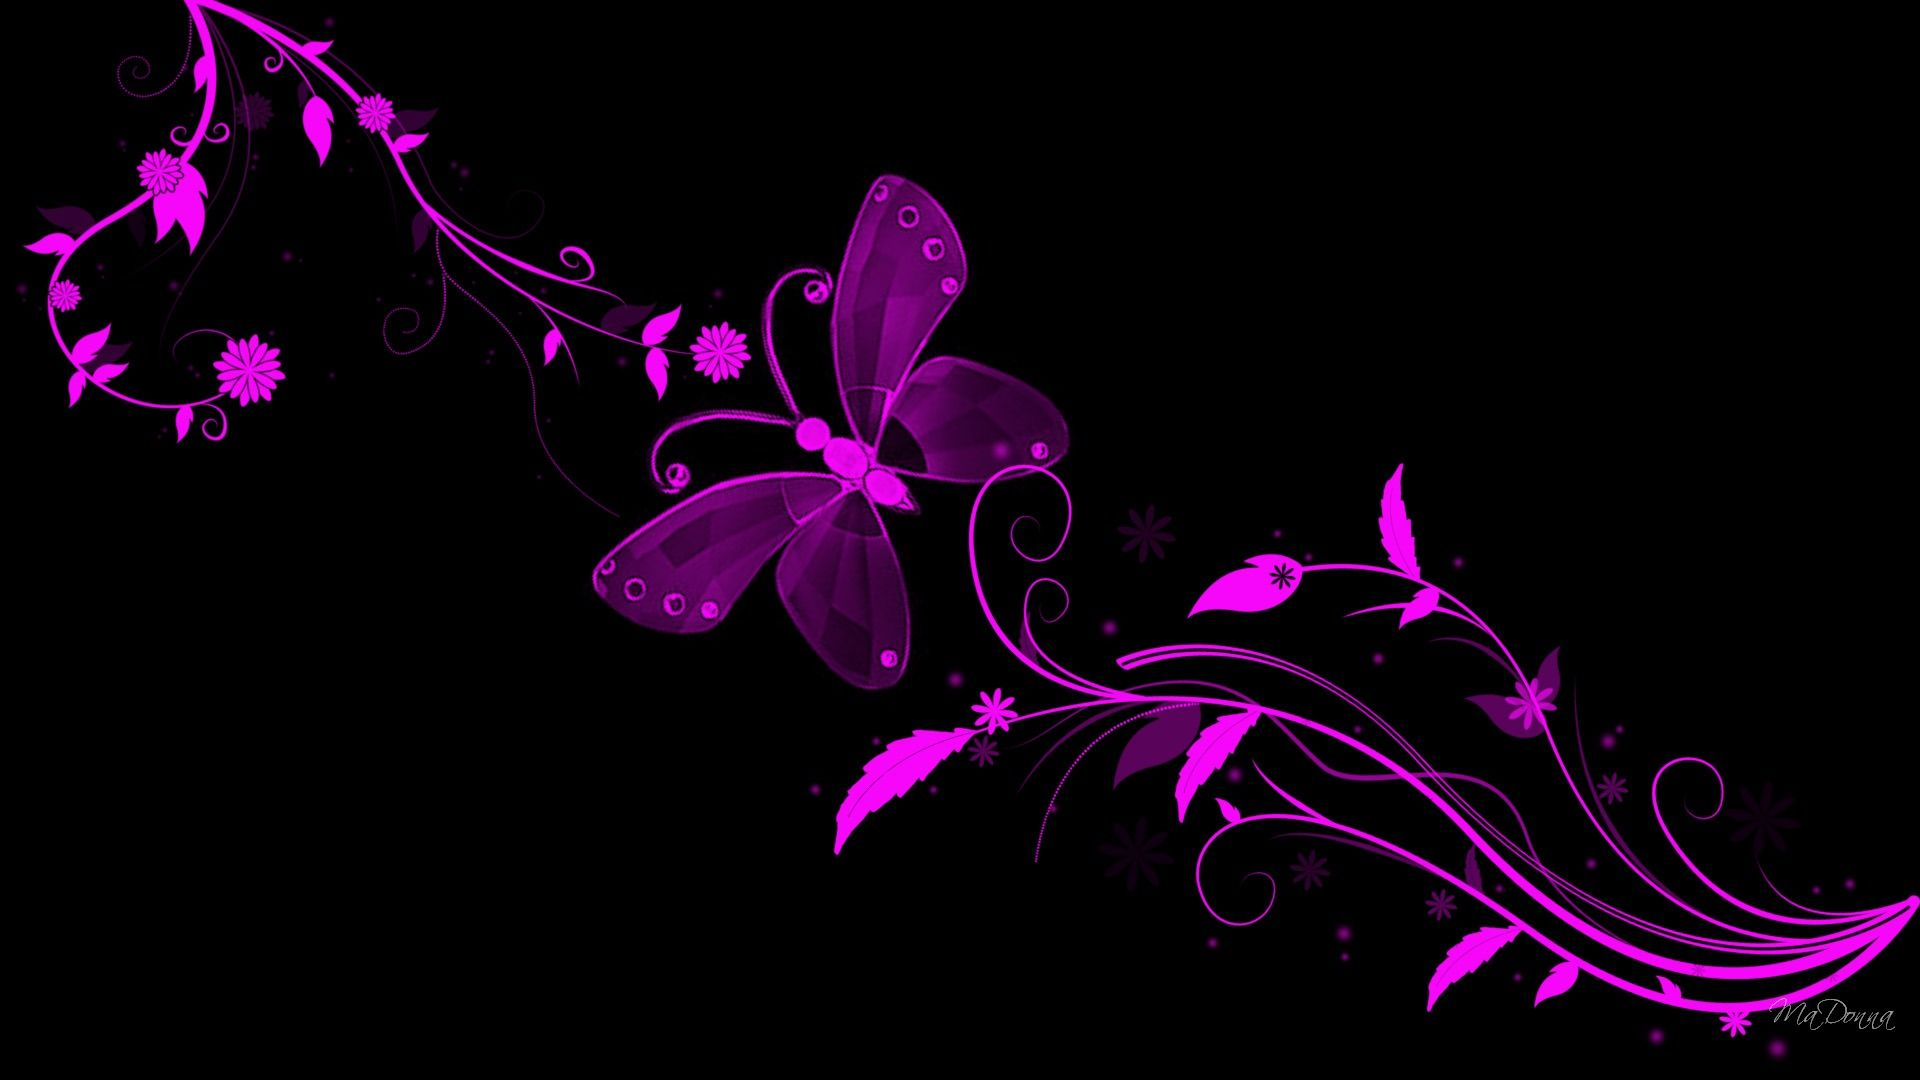 Beautiful Butterfly Wallpaper Beautiful Abstract Flowers And Butterfly Wallpaper 1080p U Black And Purple Wallpaper Butterfly Wallpaper Purple Wallpaper Hd